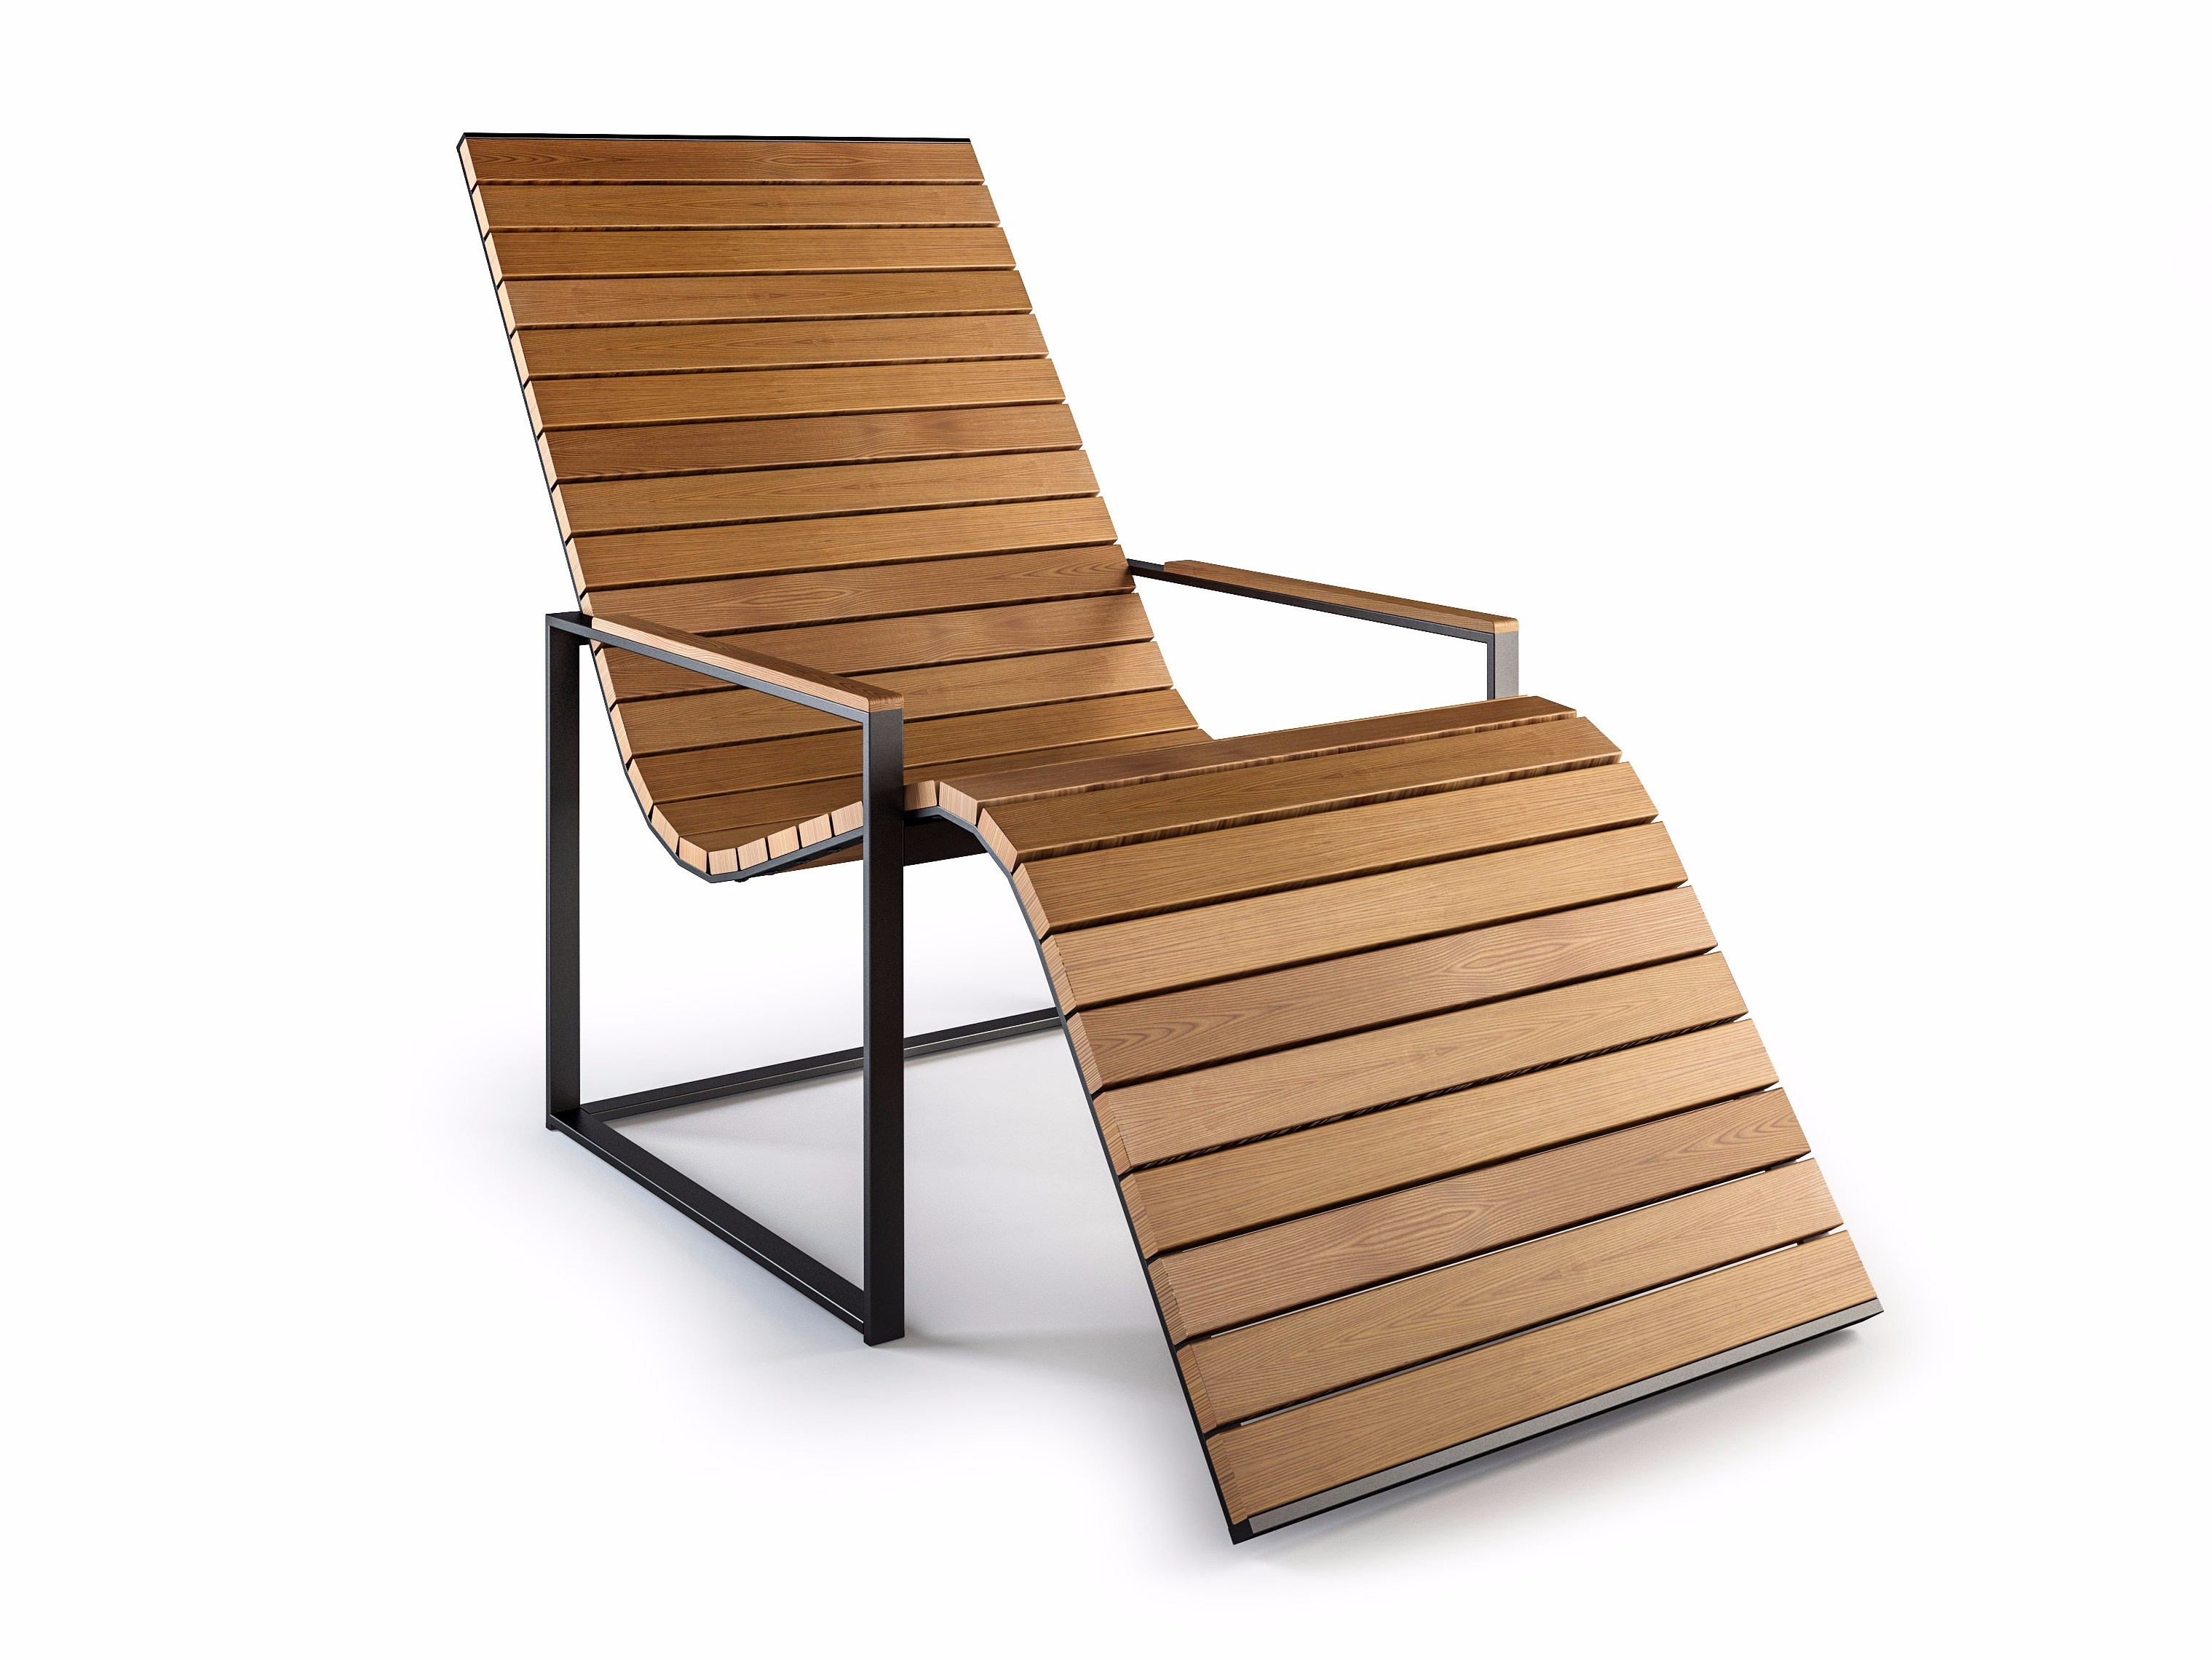 deck chairs wooden deck chair with armrests garden sun chair by röshults design brda -  broberg EXNWIOO